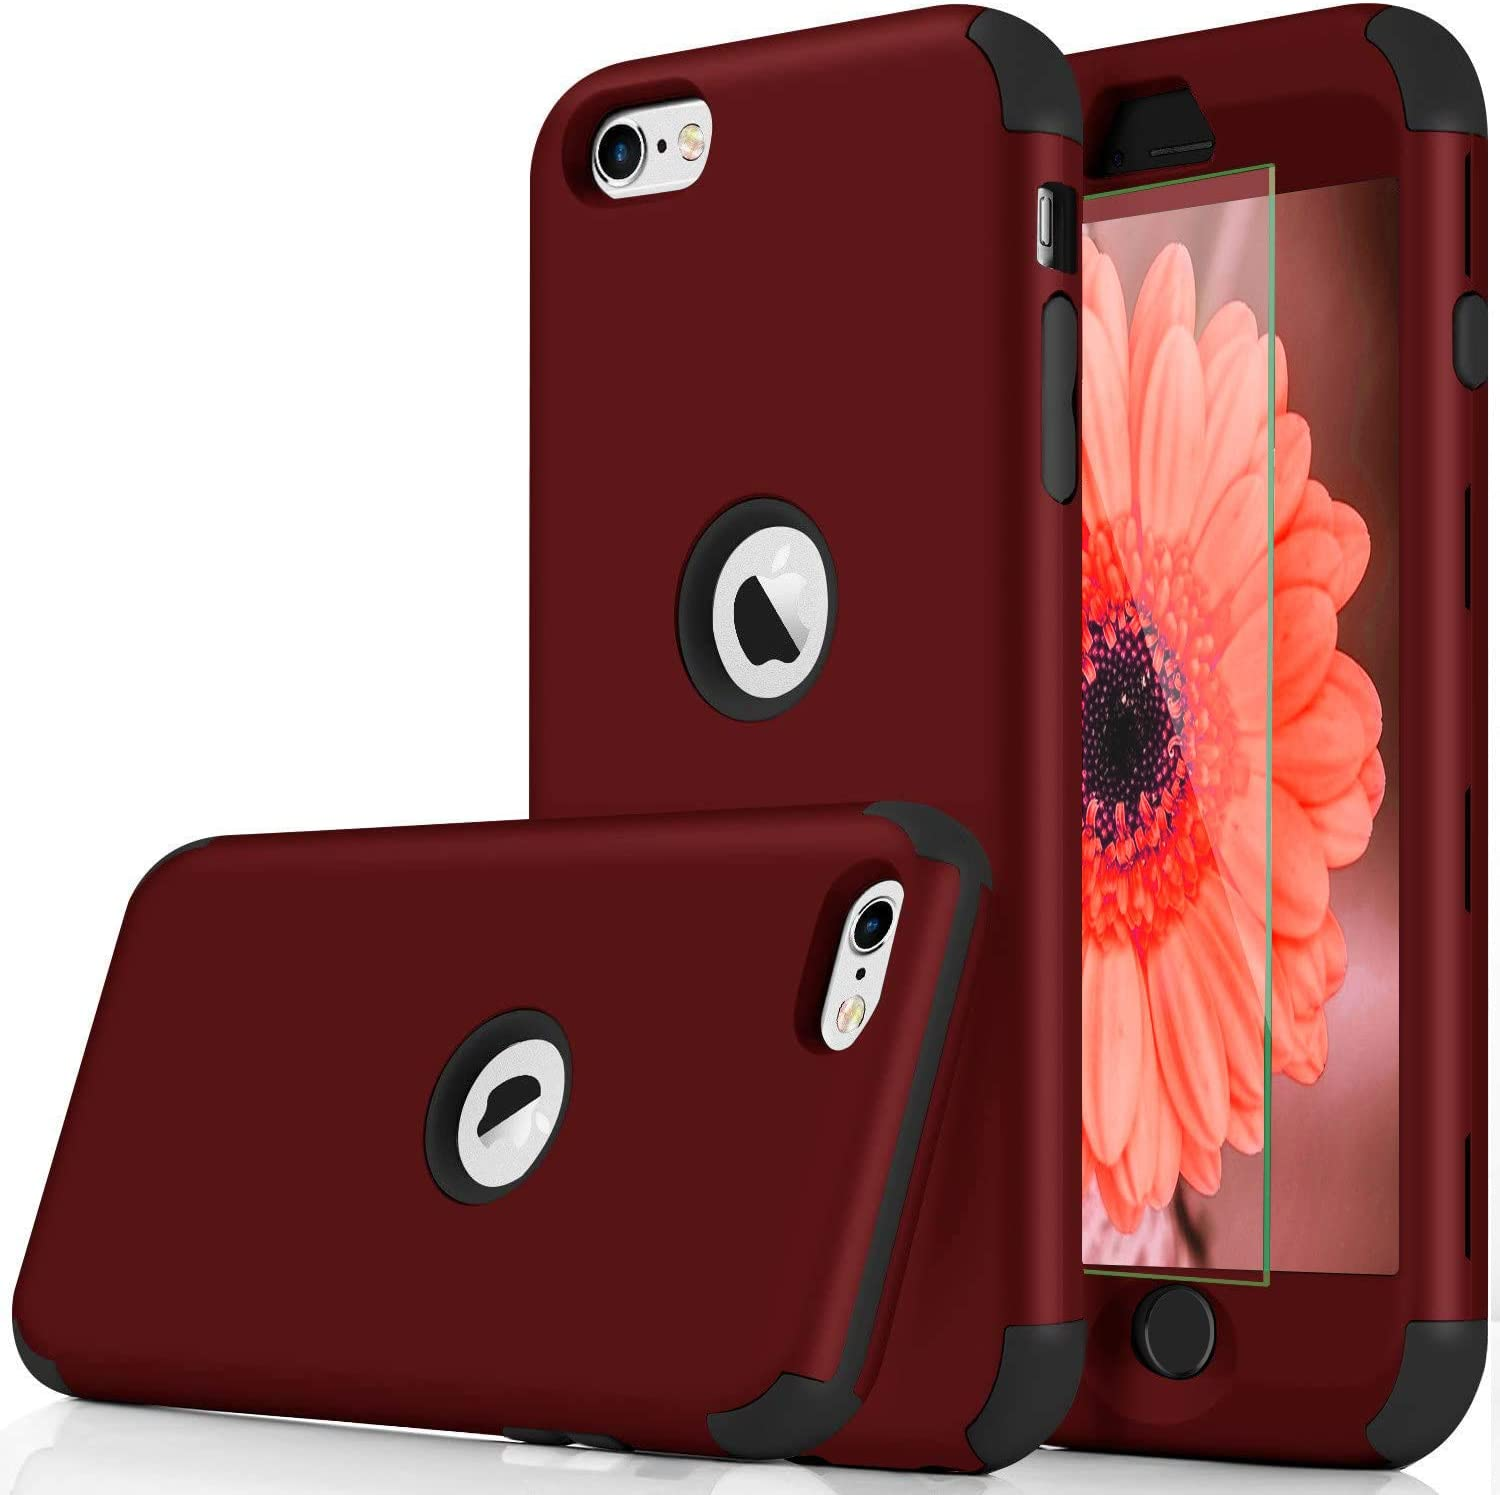 DUDETOP Compatible for iPhone SE 2020 Case,3-in-1 360 Full Body Shockproof Armor Protective Cover Design with Tempered Glass Screen Protector for Apple iPhone SE 2020 (Red)